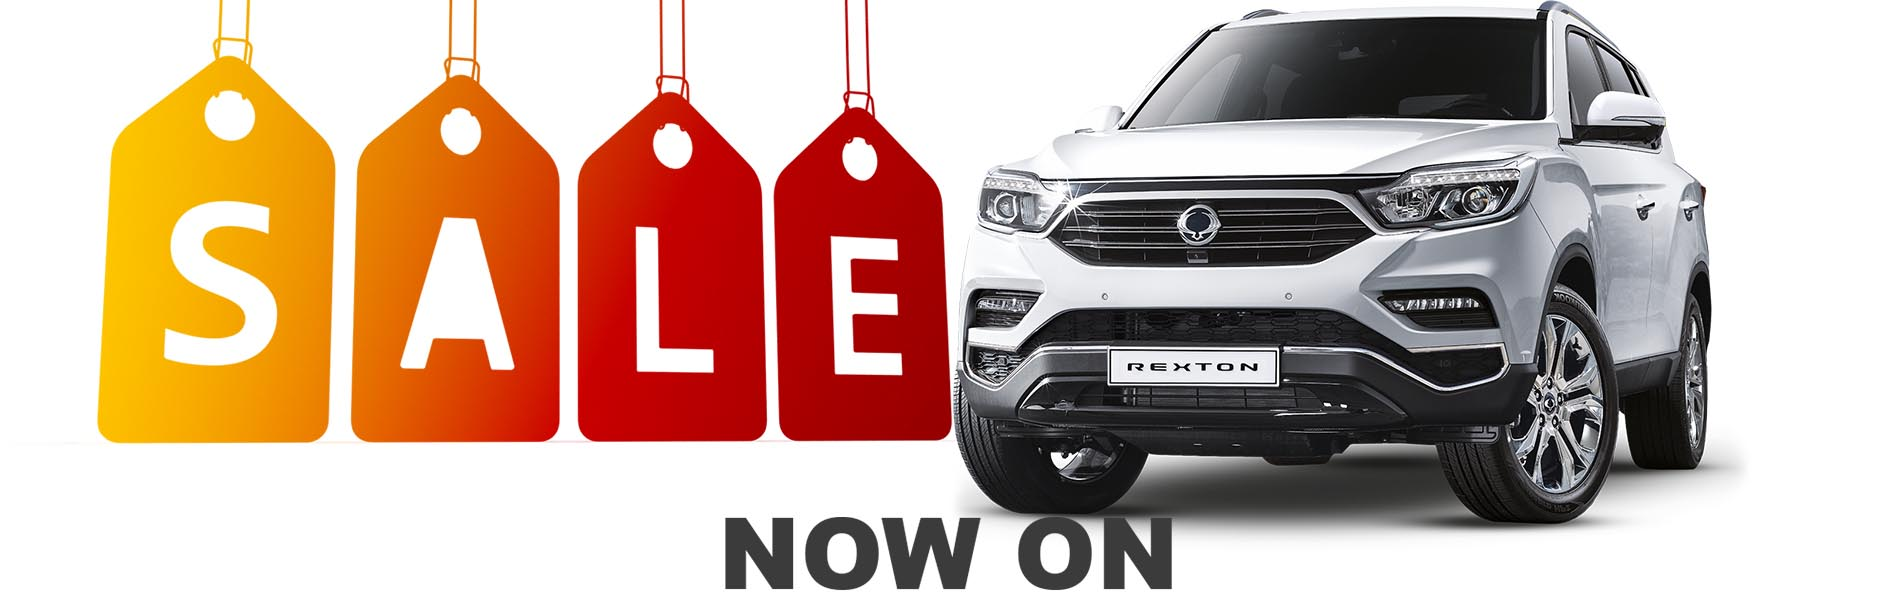 ssangyong-reading-sale-now-one-sli